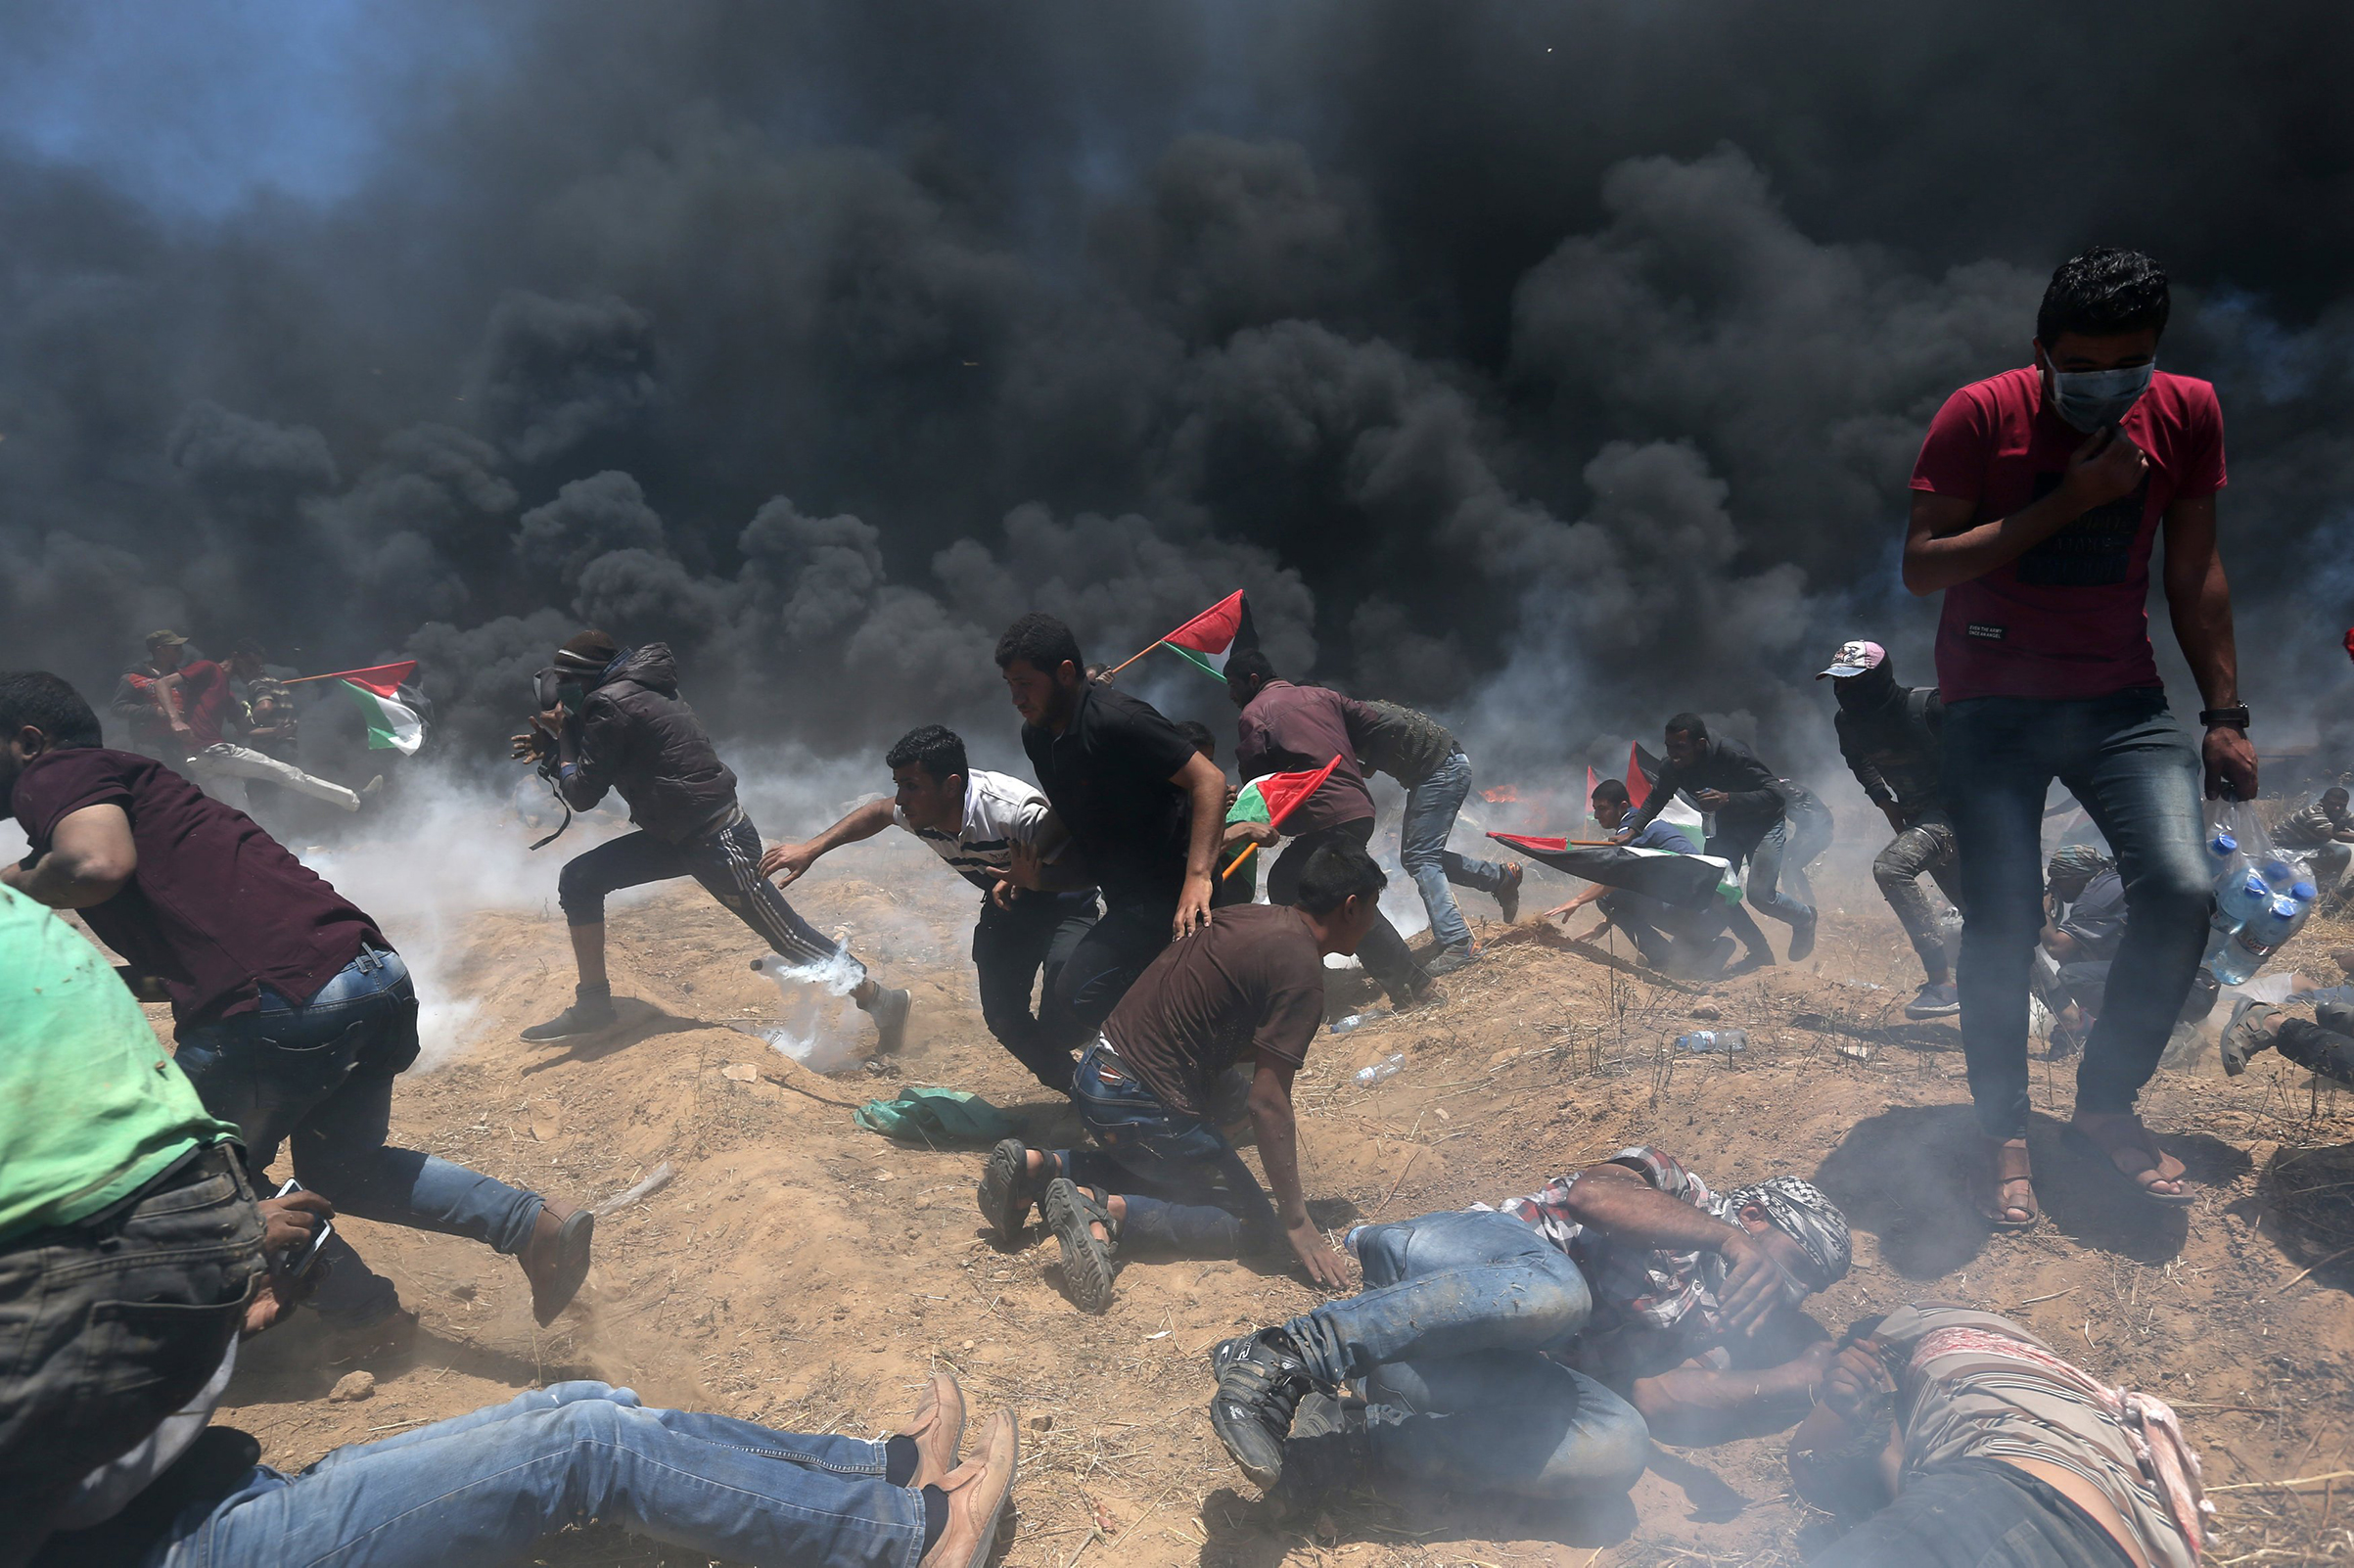 Palestinians run for cover from Israeli fire and tear gas during a protest against the relocation of the U.S. embassy to Jerusalem, at the Israel-Gaza border in the southern Gaza Strip, on May 14, 2018.